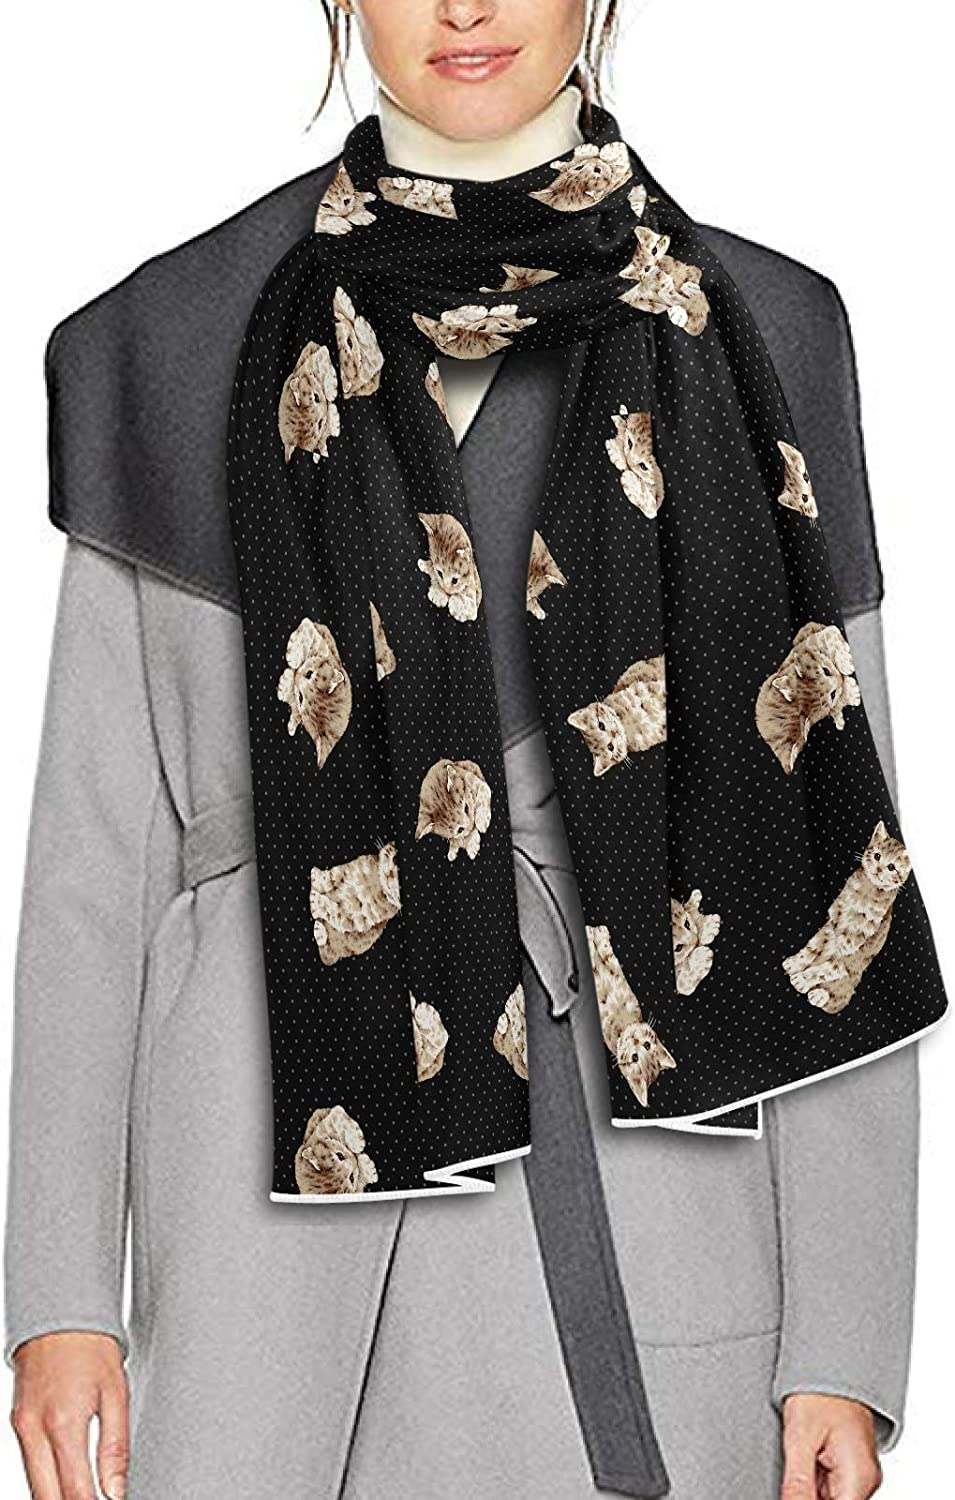 Scarf for Women and Men Pretty Cute Cats Blanket Shawl Scarves Wraps Warm soft Winter Long Scarves Lightweight